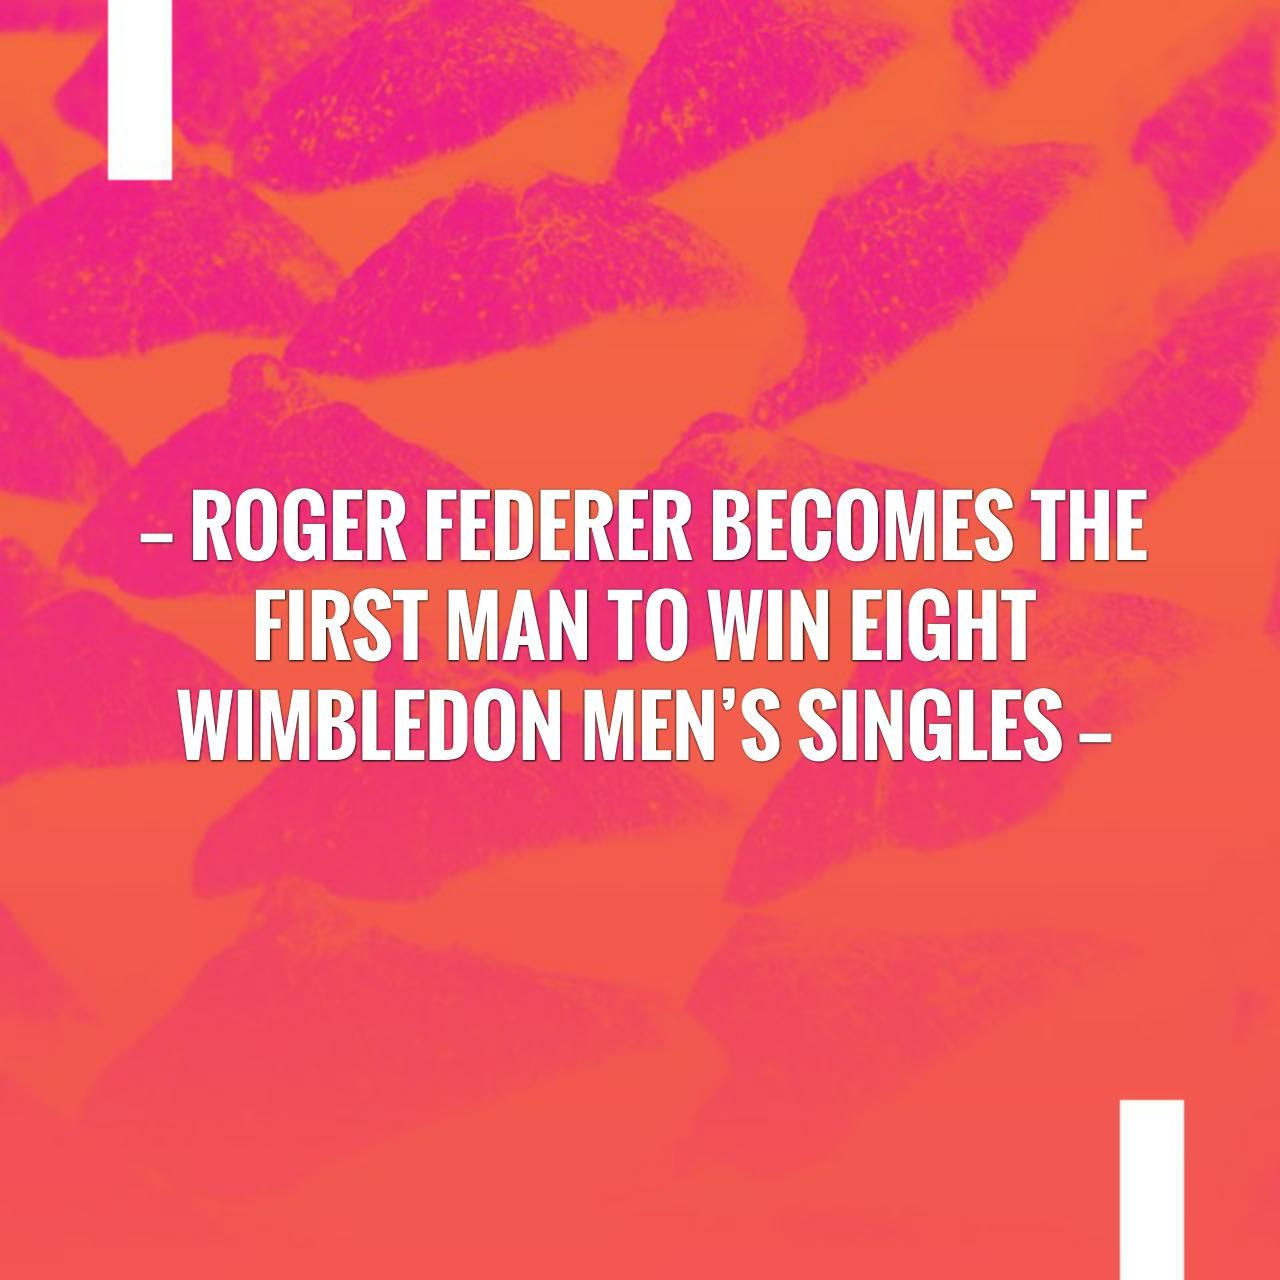 New on my blog! Roger Federer the first man to win